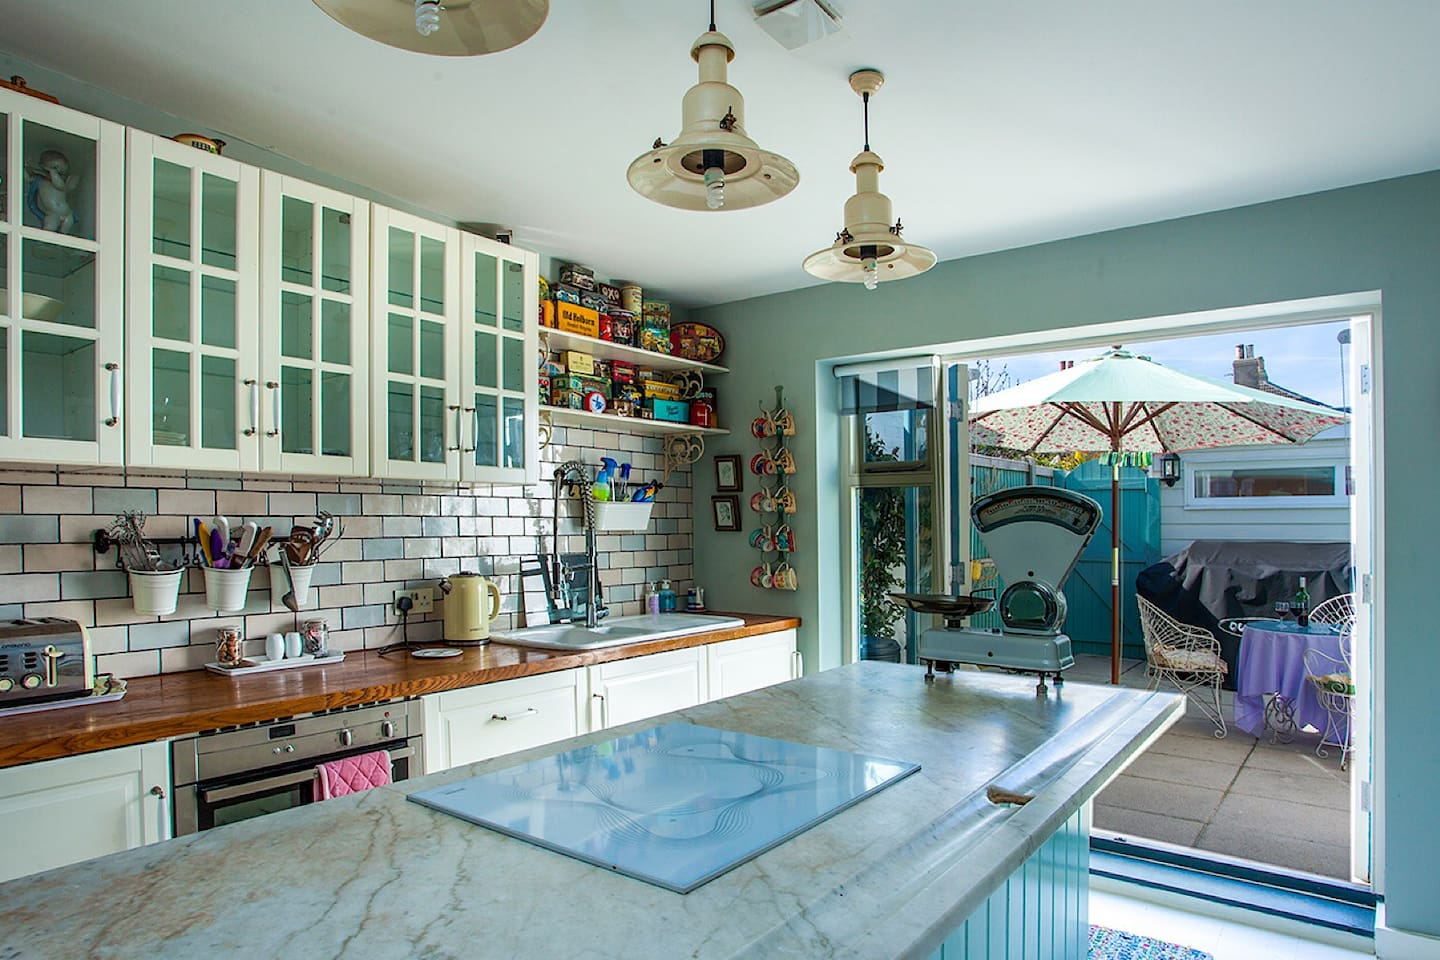 Induction hob, hide and slide oven, dishwasher, washer/dryer, Sage coffee maker and a HUGE fridge/freezer makes this kitchen one of the best equipped holiday cottages